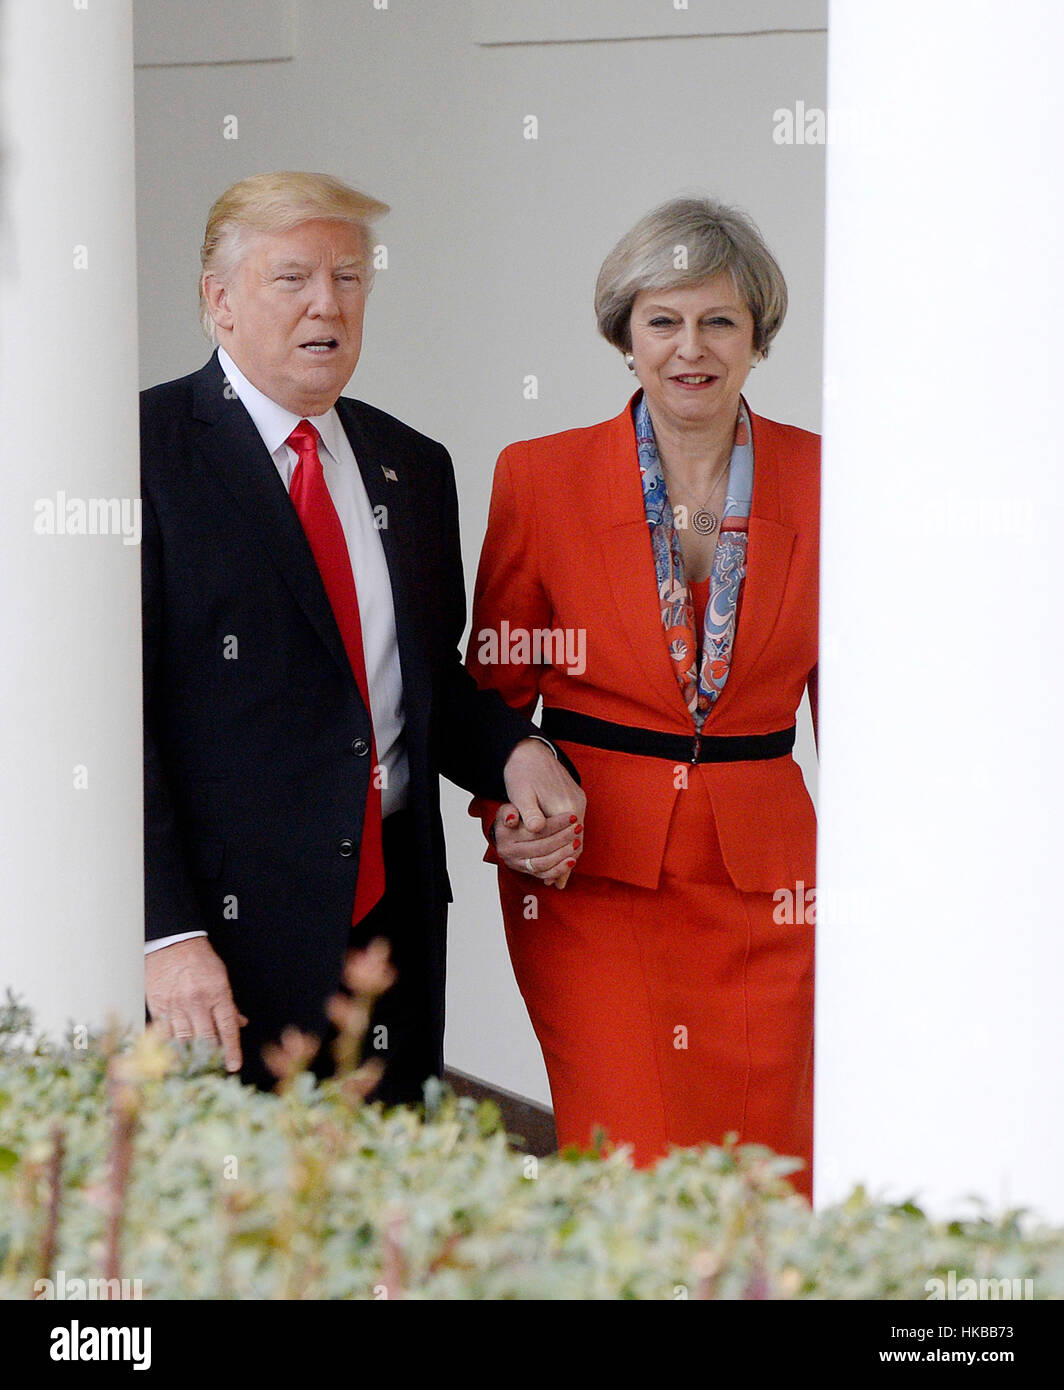 Washington DC, USA. 27th January 2017. United States President Donald Trump and Prime Minister Theresa May of the Stock Foto